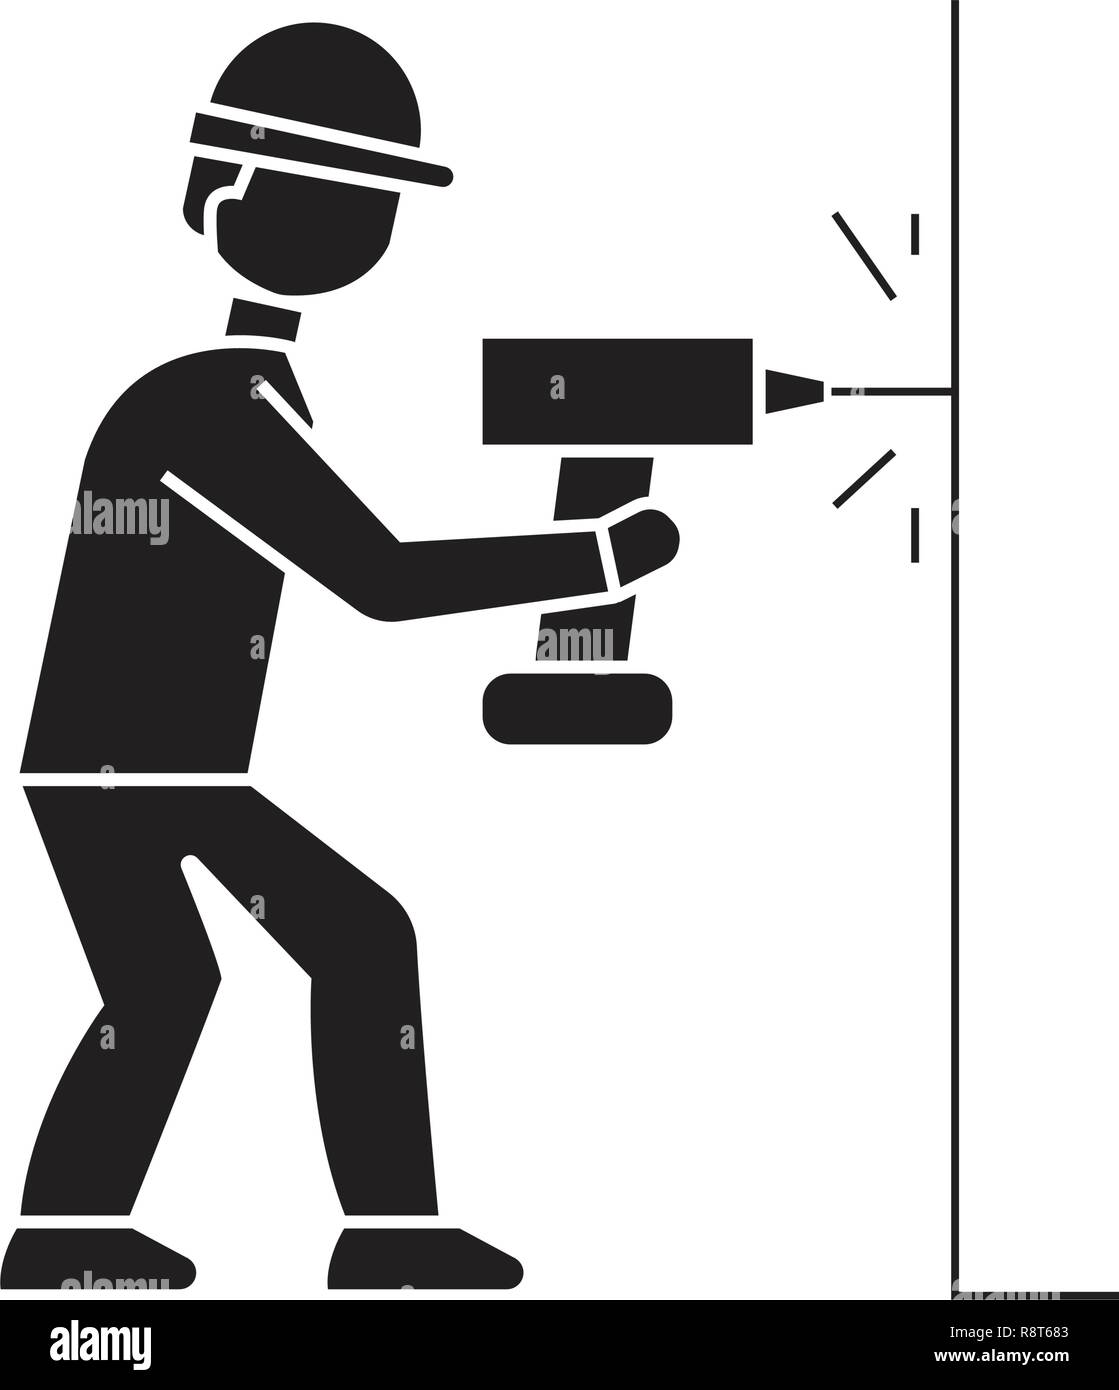 Drilling a hole in wall black vector concept icon. Drilling a hole in wall flat illustration, sign - Stock Vector